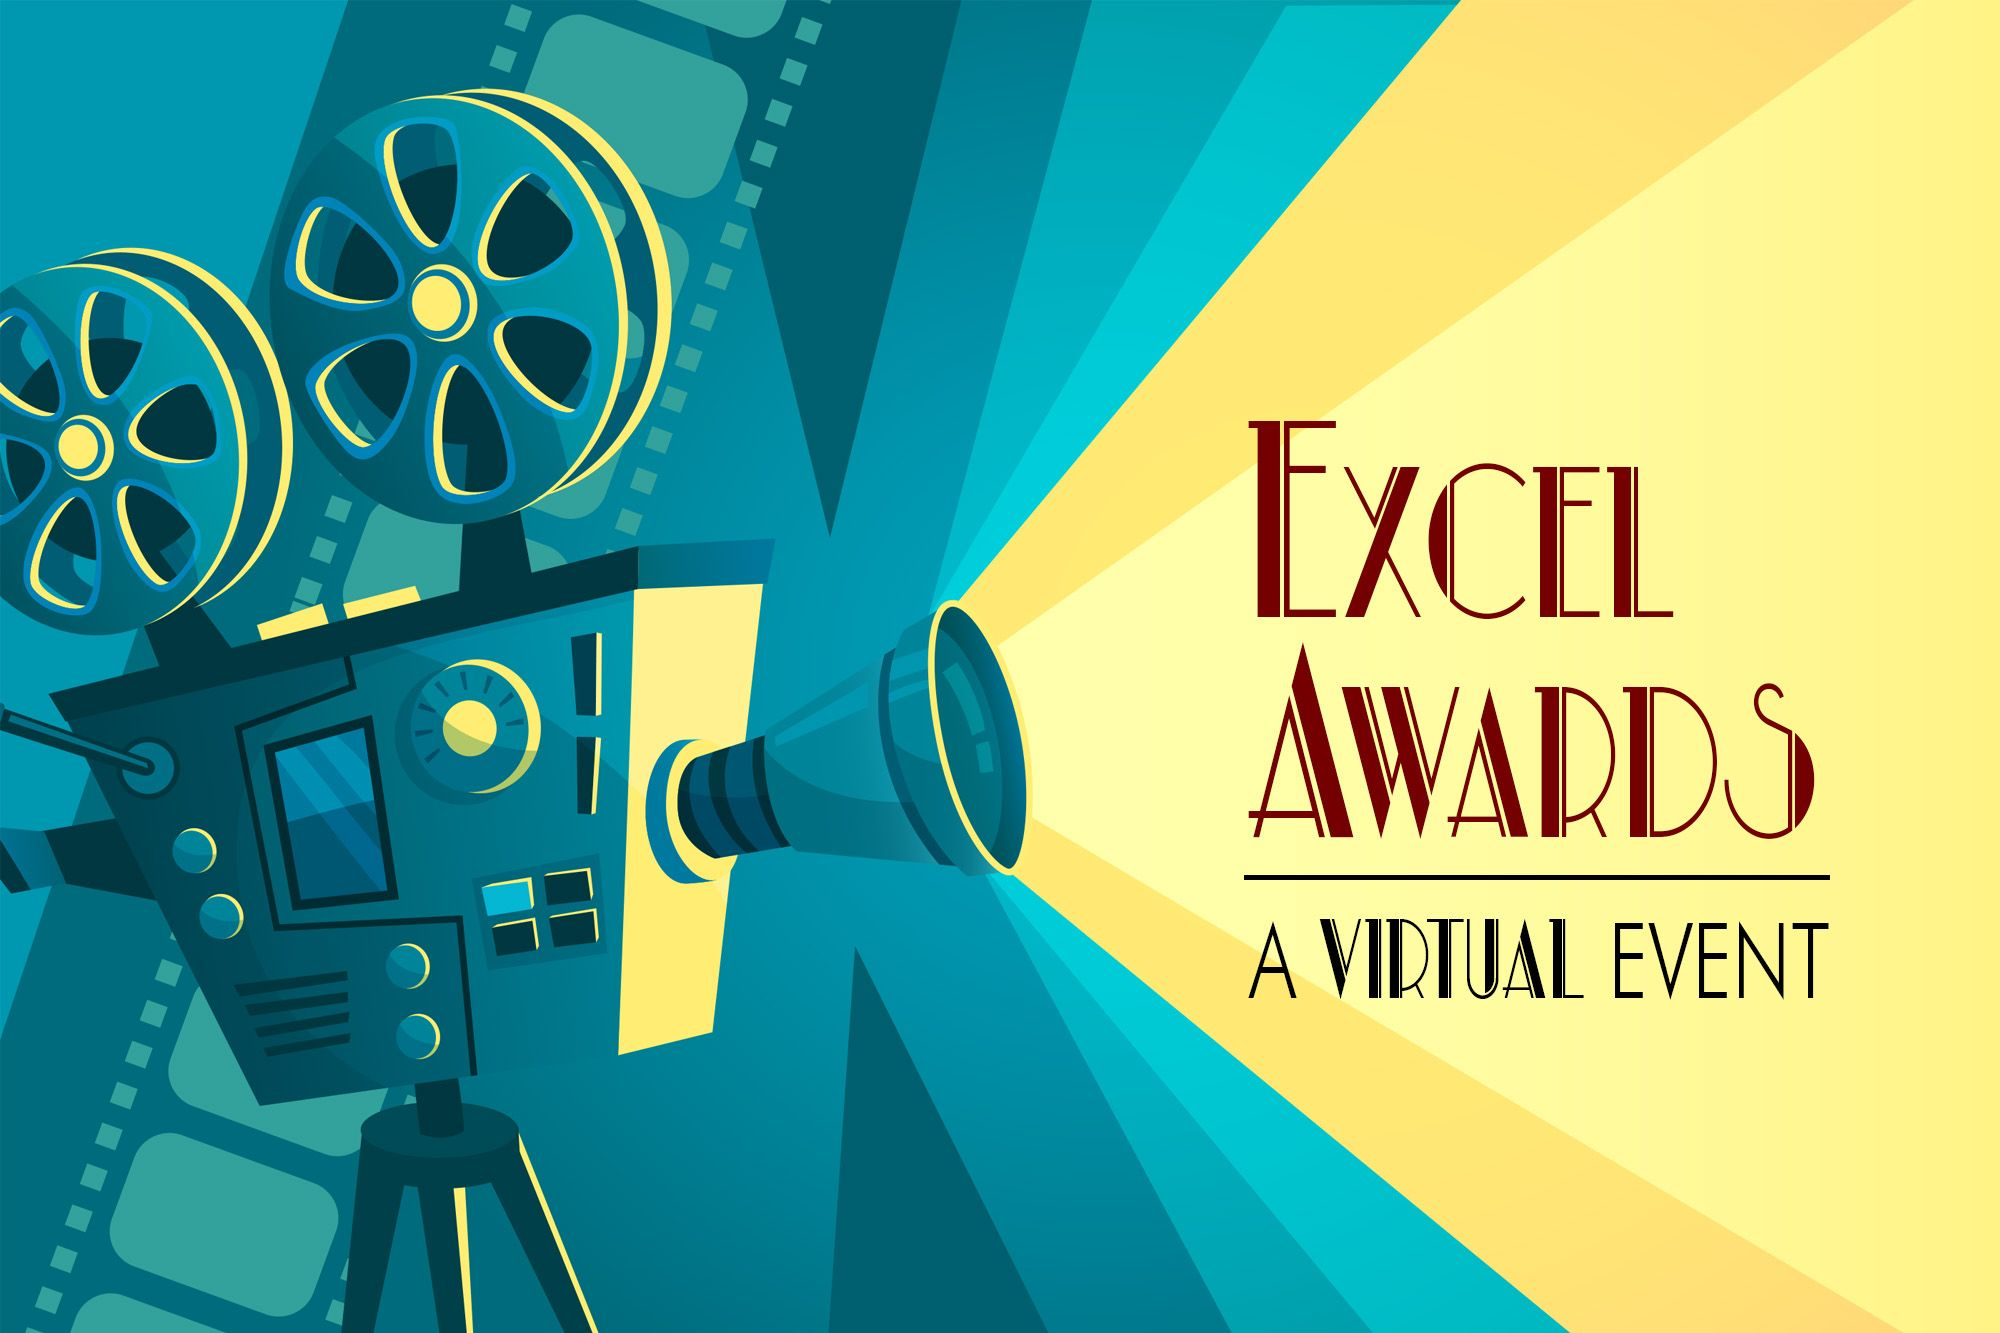 The 2019-2020 Excel Awards